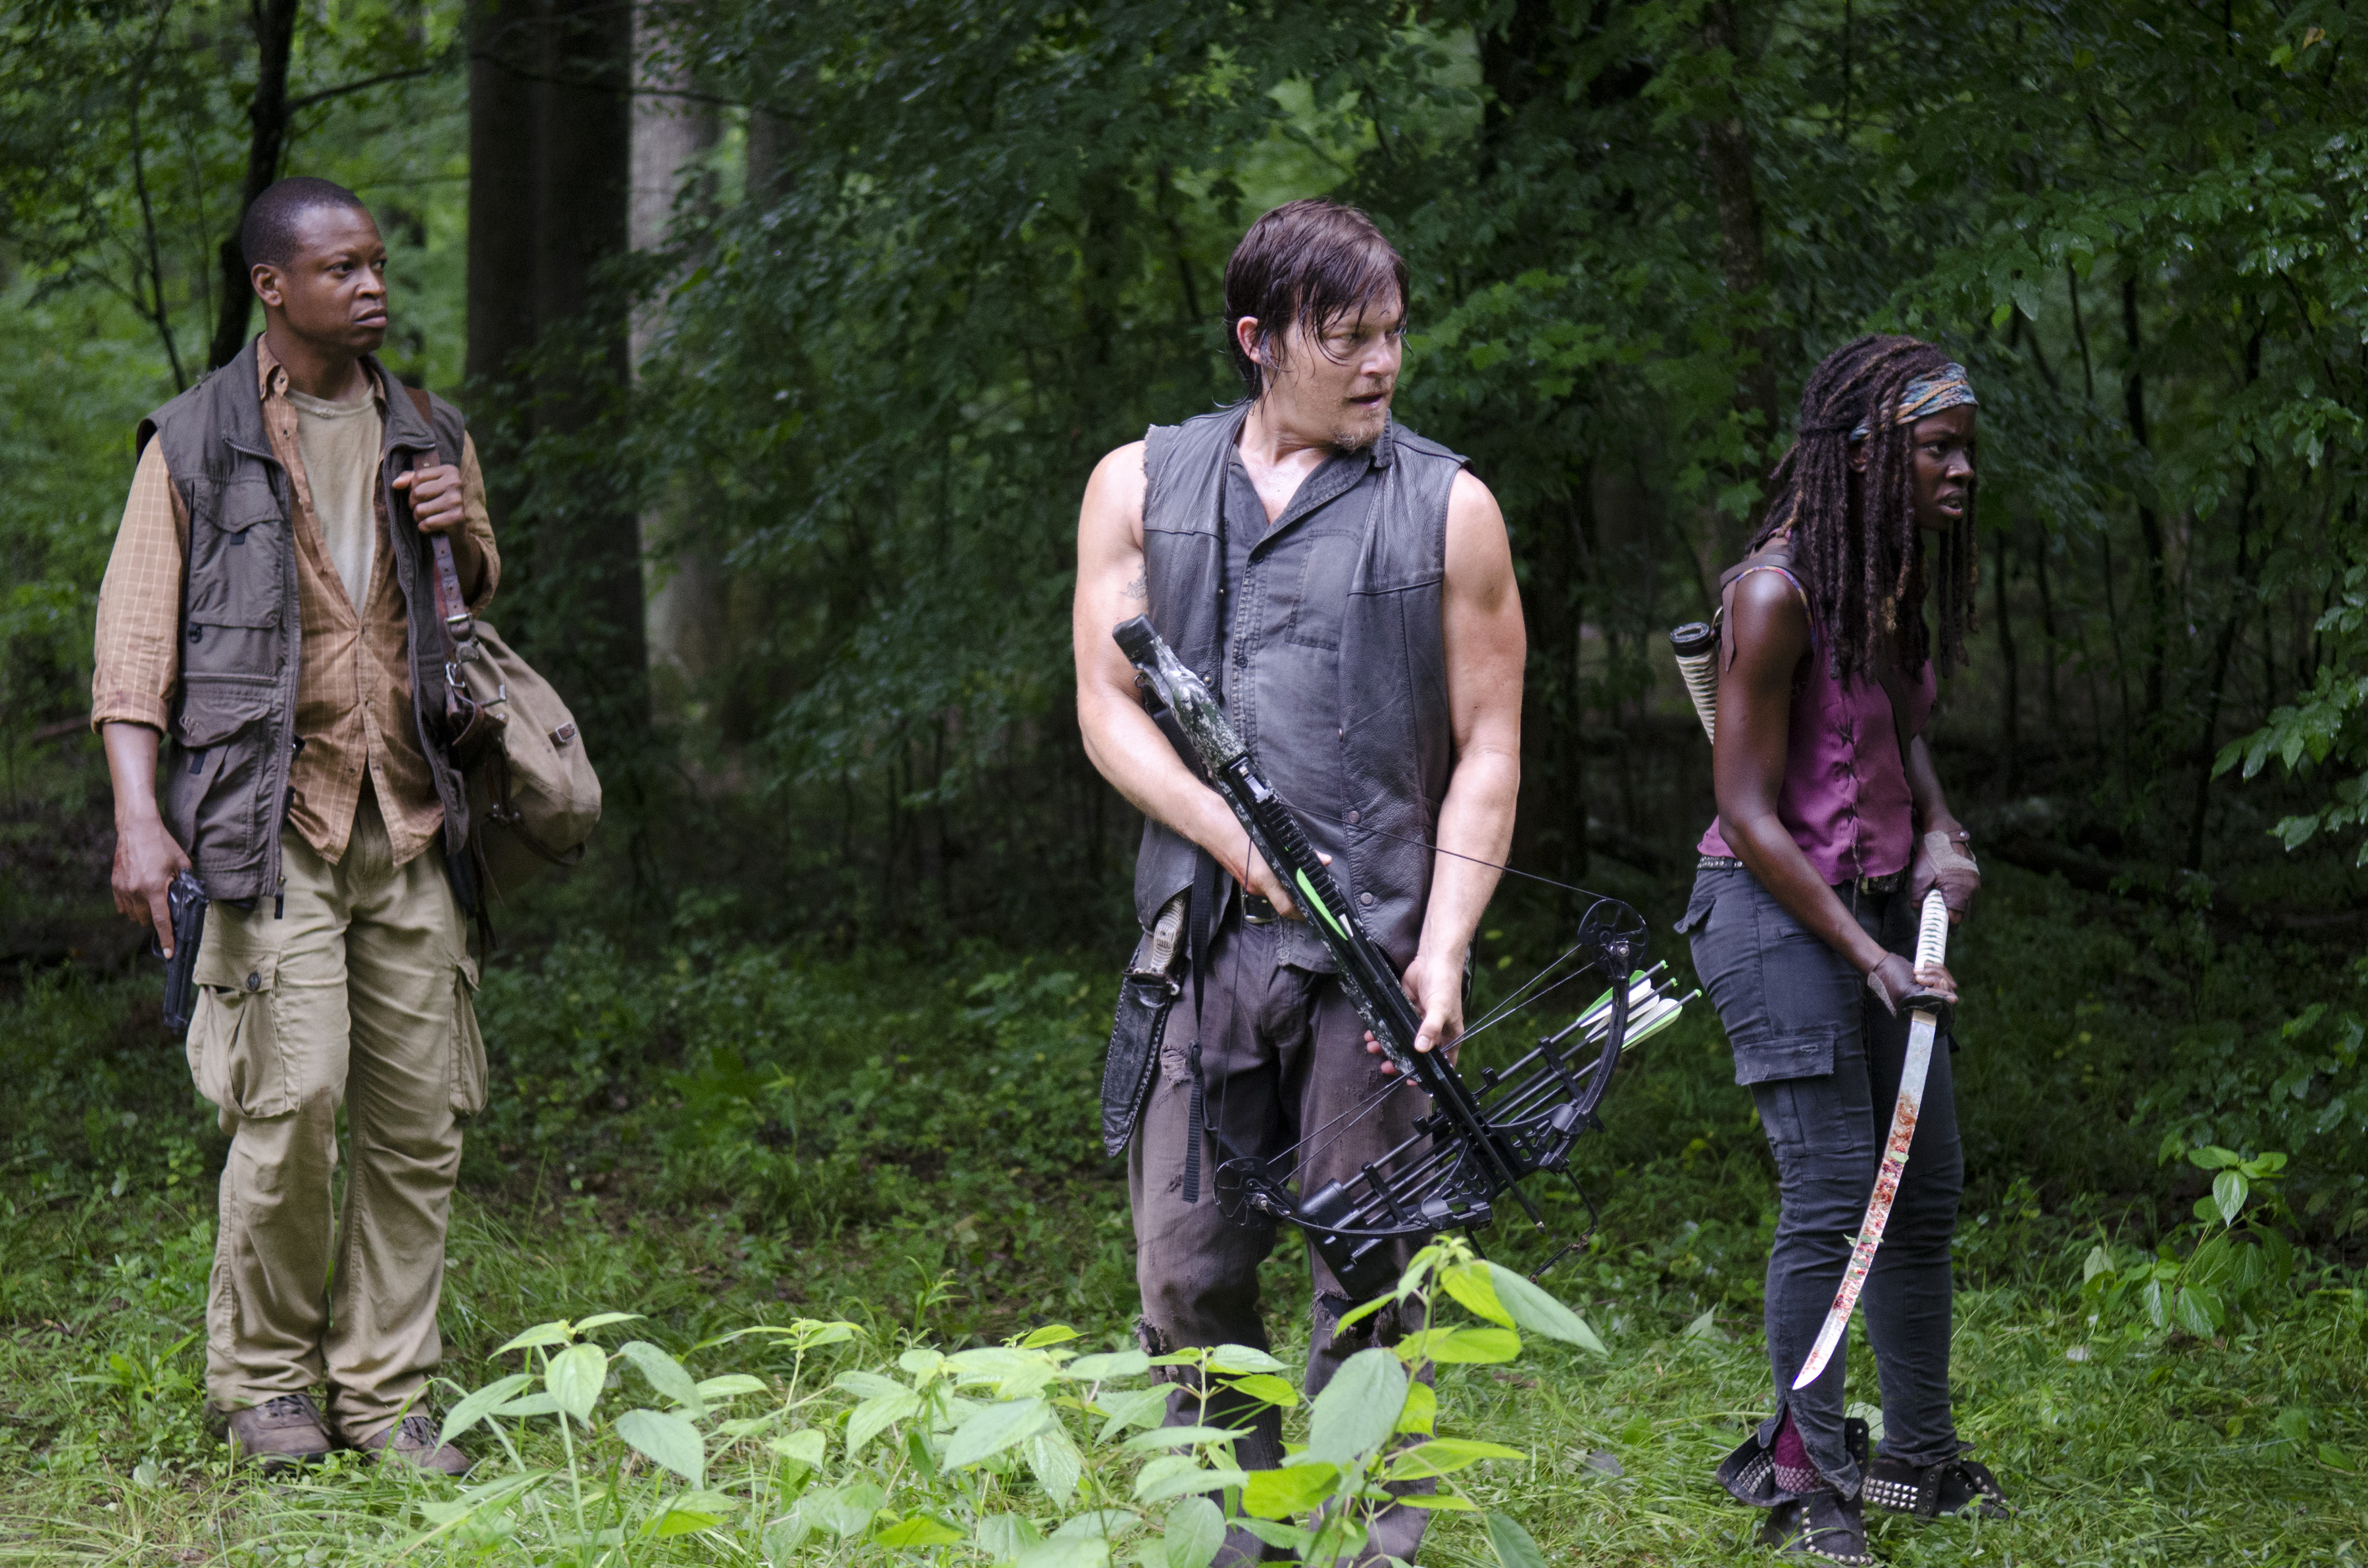 The Walking Dead Bob Daryl Michonne Exclusive: Cool Images From The Walking Deads Upcoming Episode, Isolation, Now Live